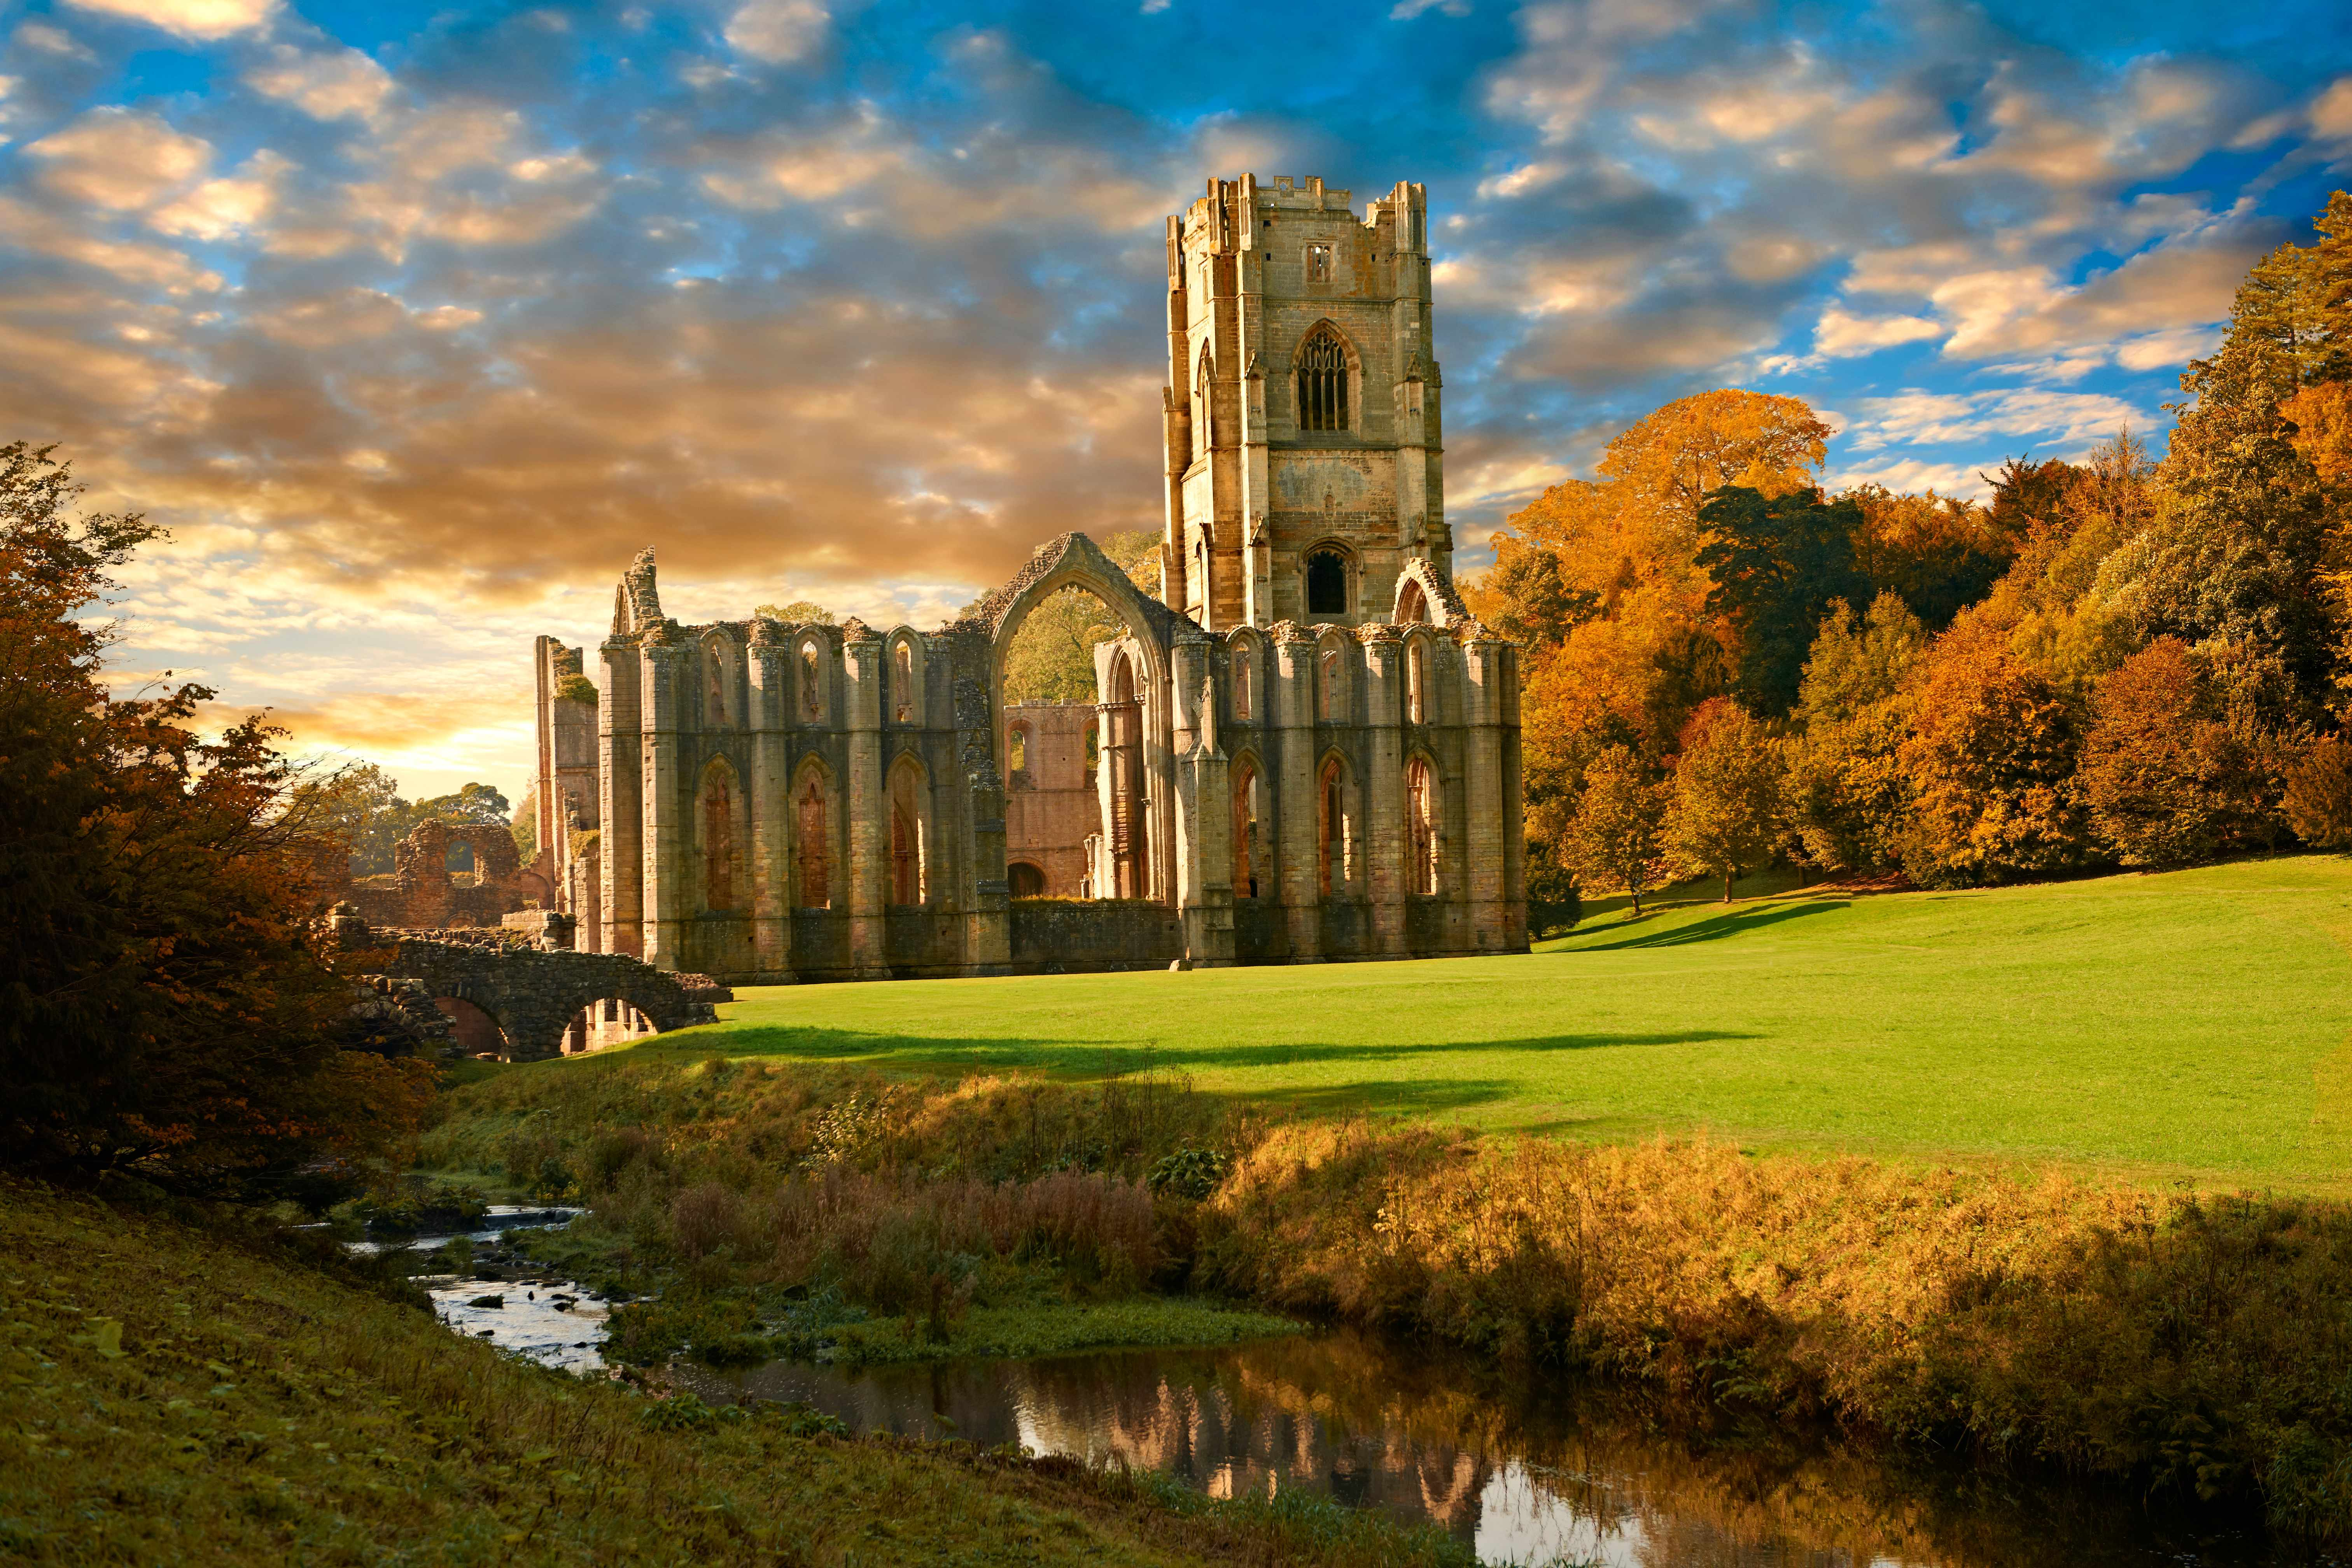 """The ruins of Fountains Abbey in North Yorkshire. Henry's motives when dismantling such monasteries """"were much more complex than pure revenge or pure avarice alone"""", says Adam Morton. (Photo by Getty Images)"""